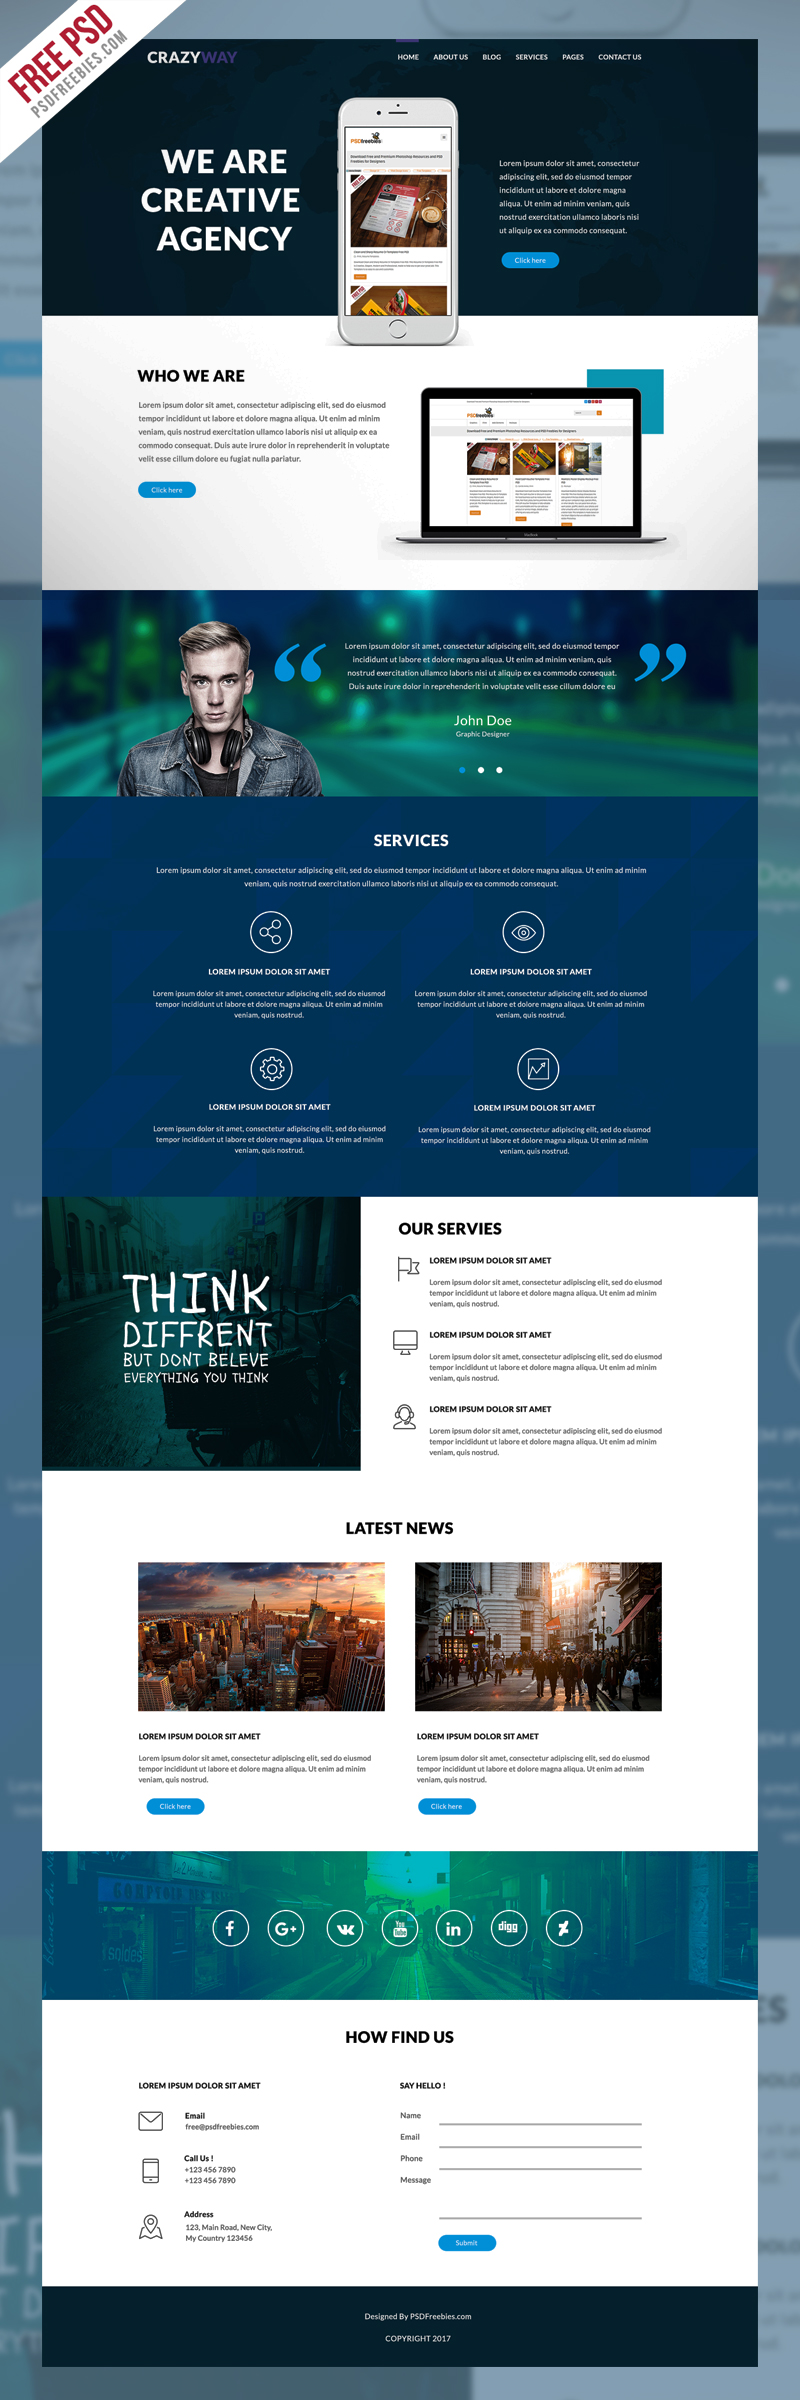 Creative Agency Website Template Free PSD | Template, Website and ...